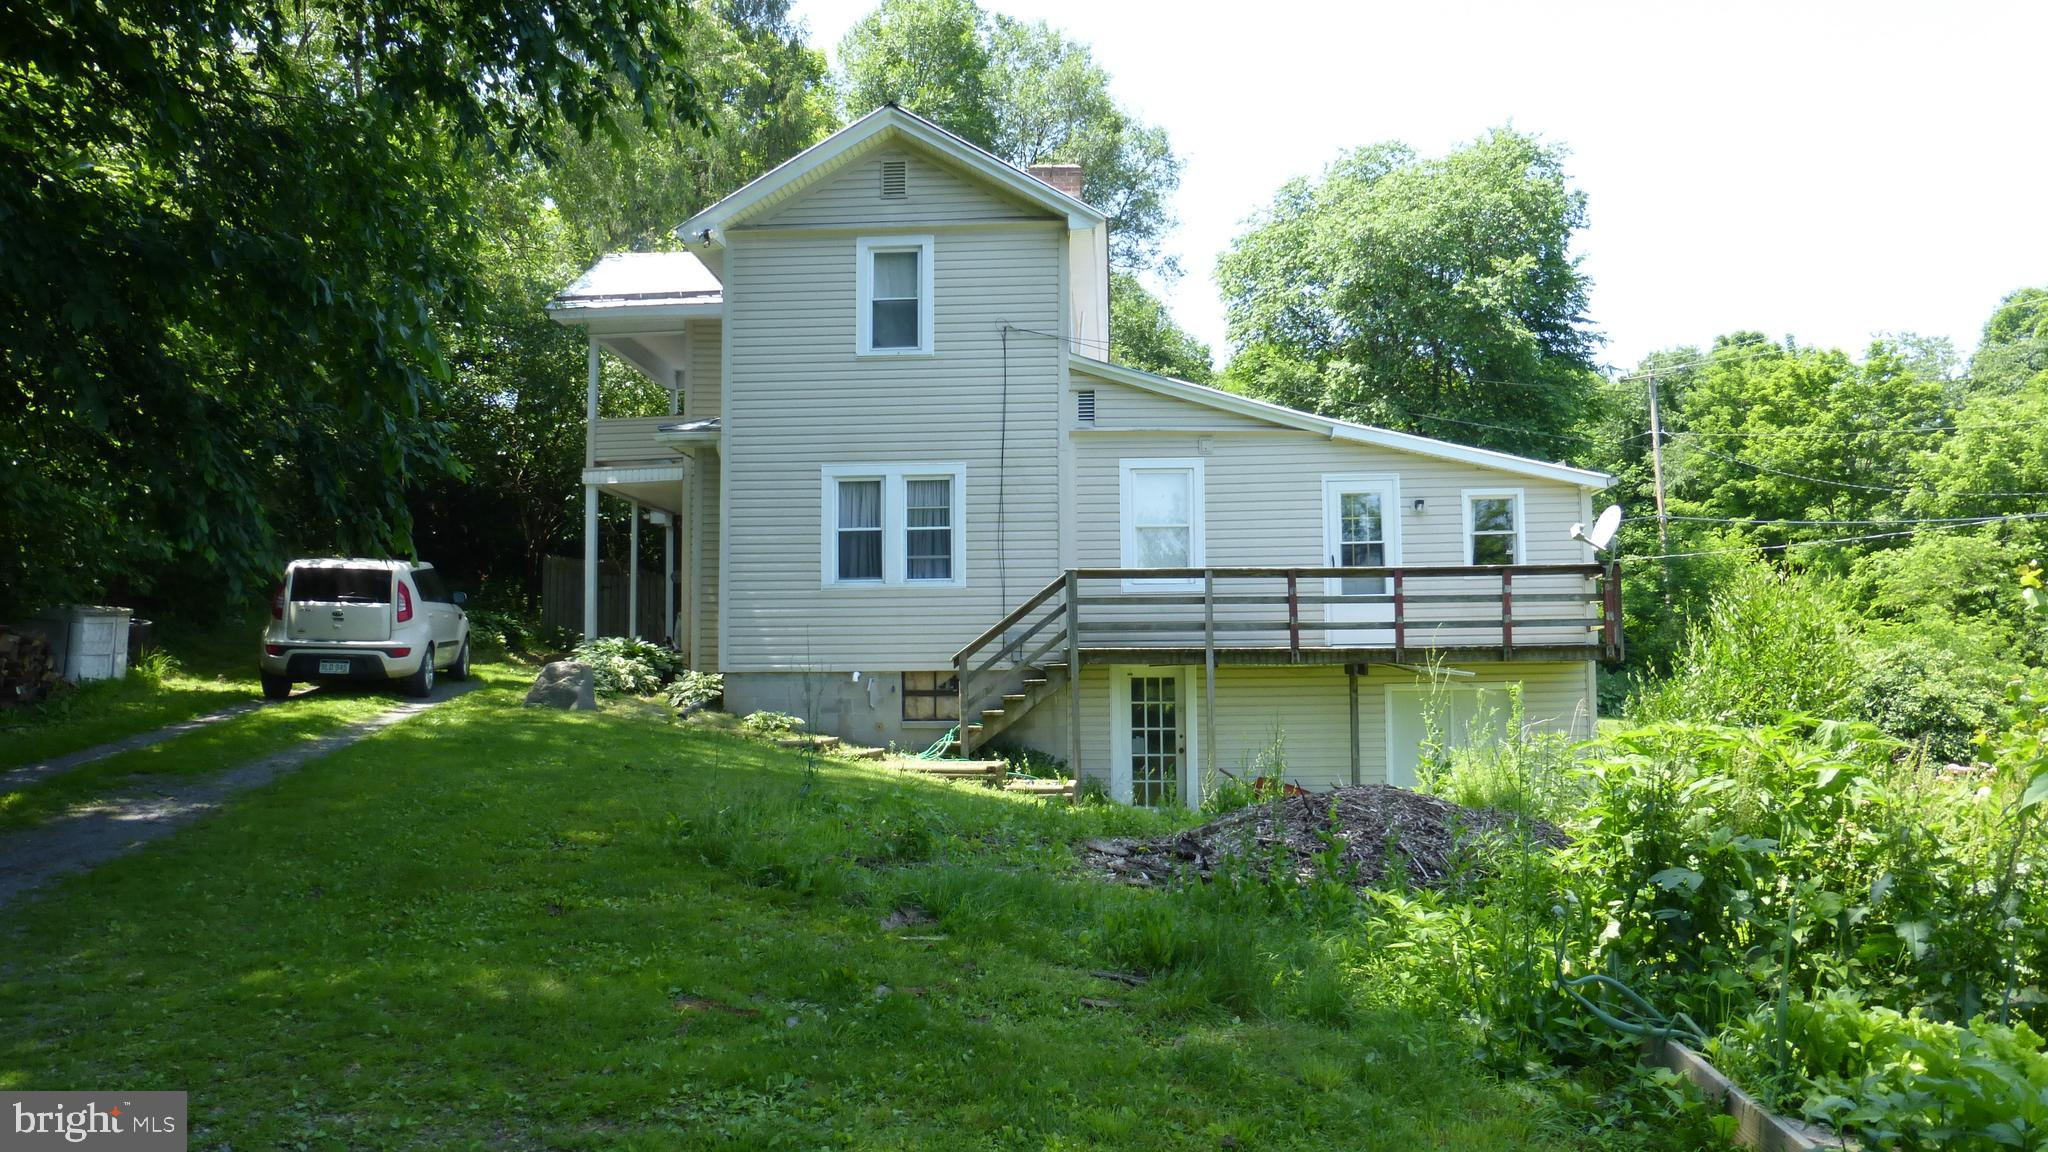 9138 STATE ROUTE 259, LOST CITY, WV 26810